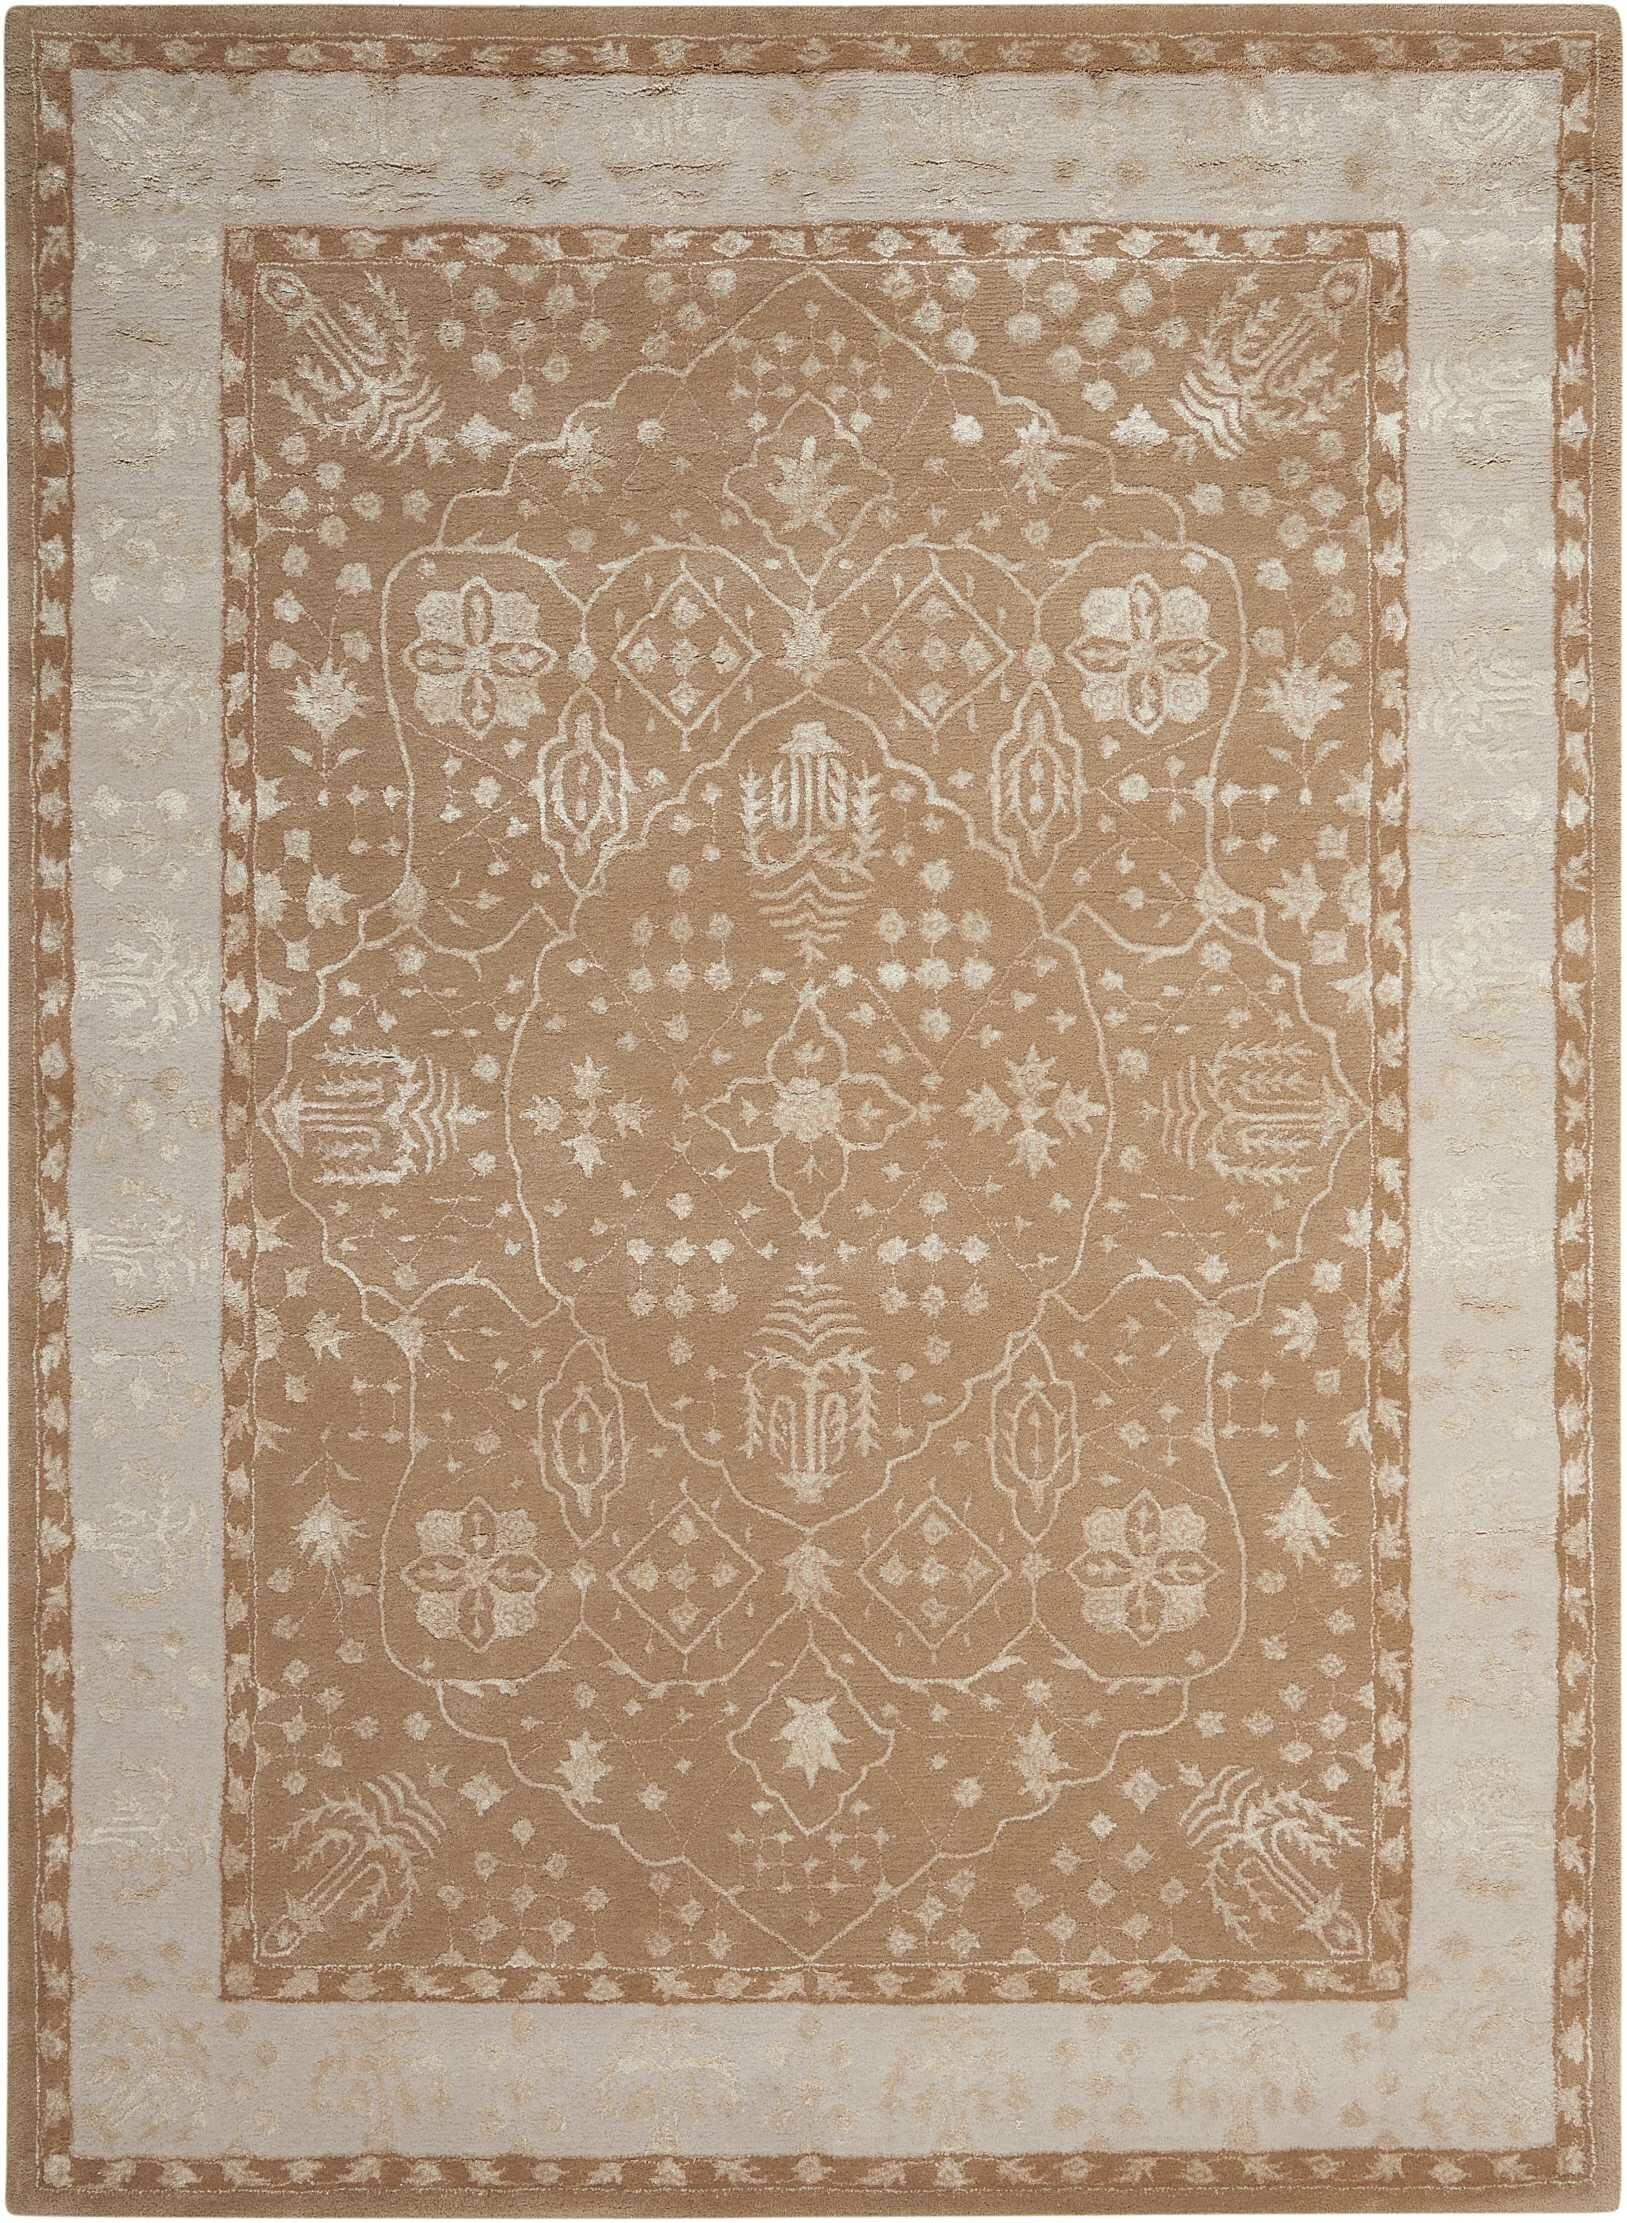 Veda Hand-Tufted Warm Taupe Area Rug Rug Size: Rectangle 3'6